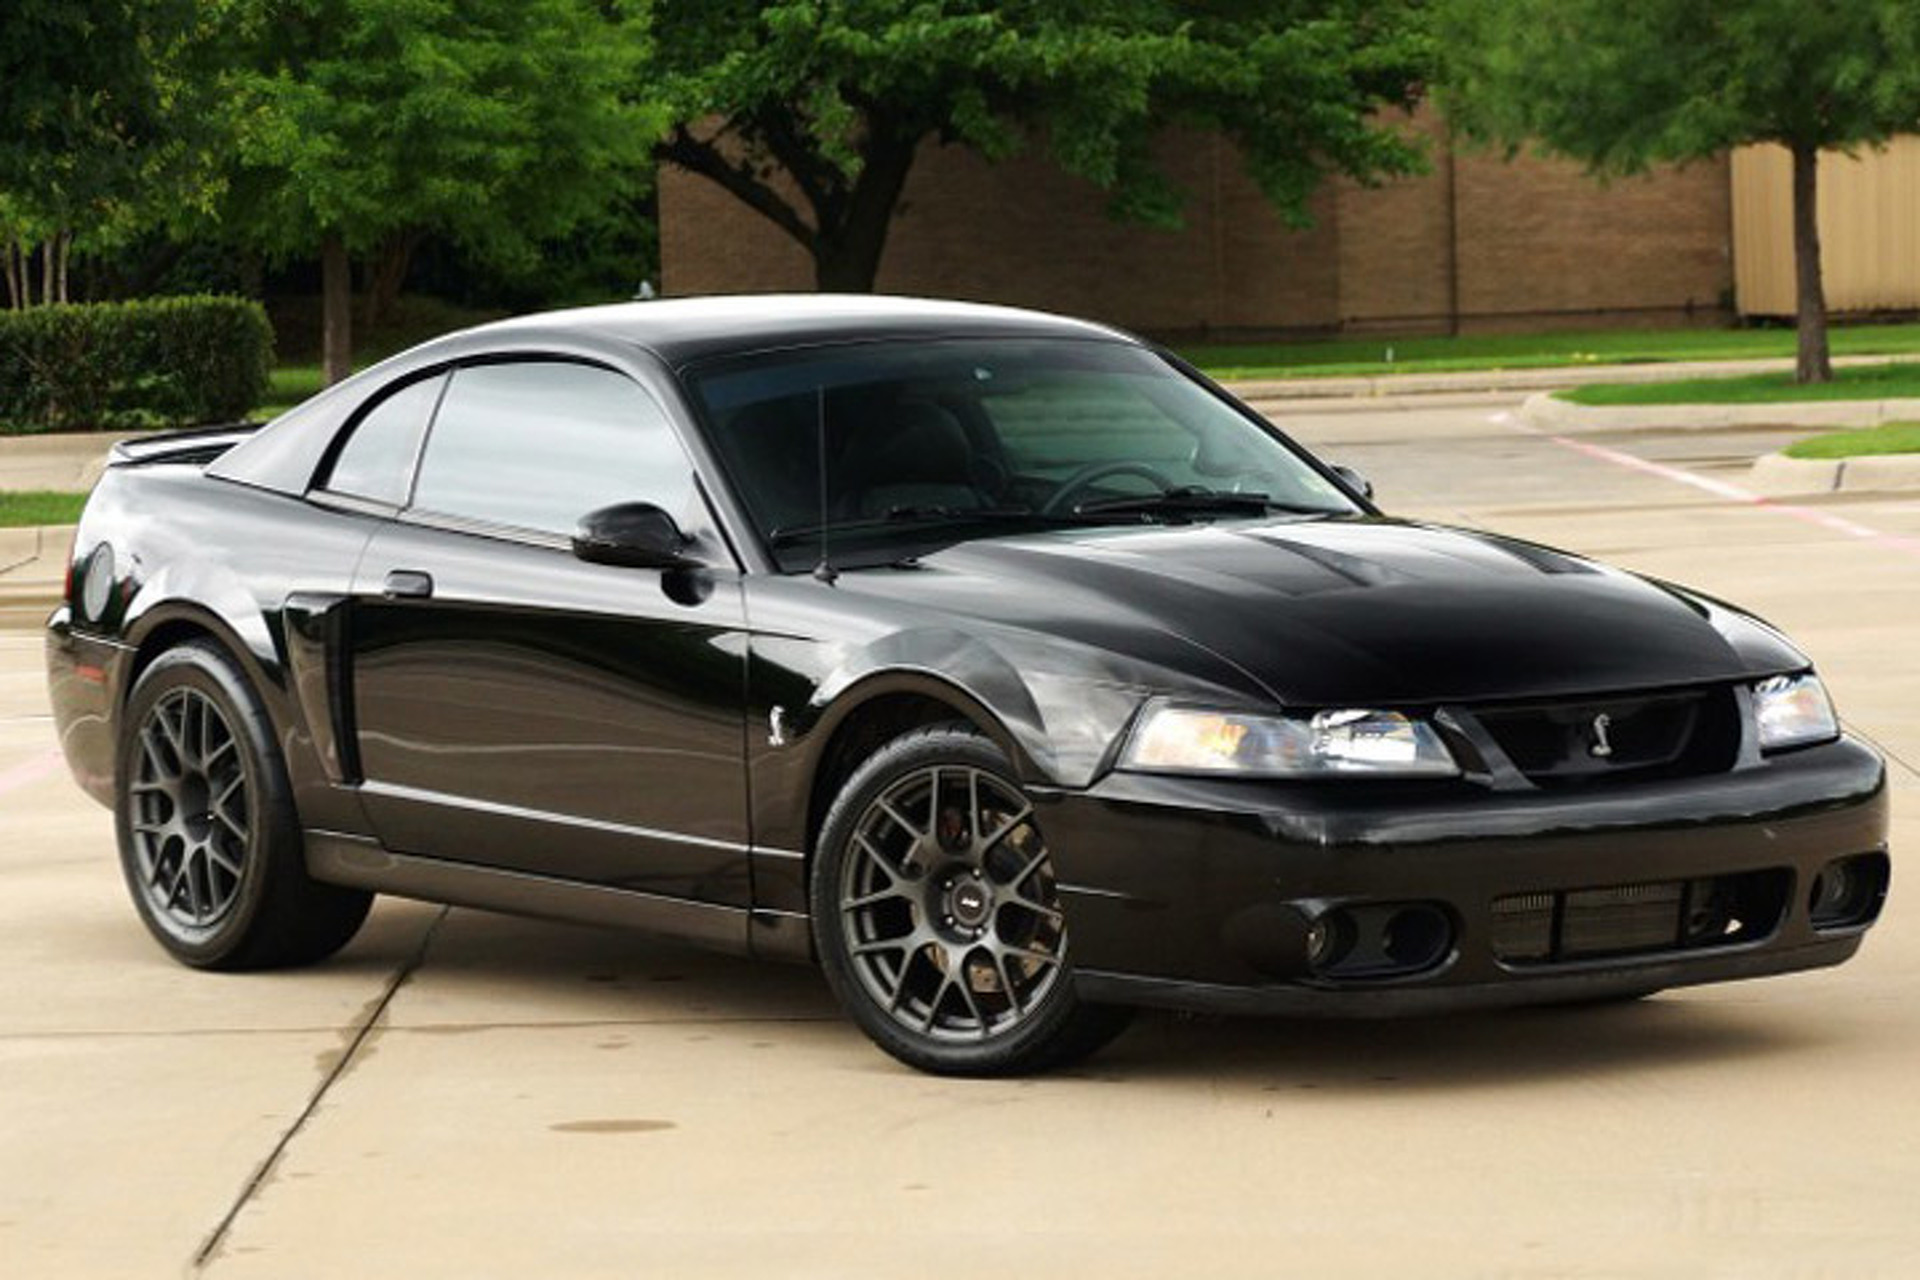 The 03 mustang cobra is one seriously mean future classic